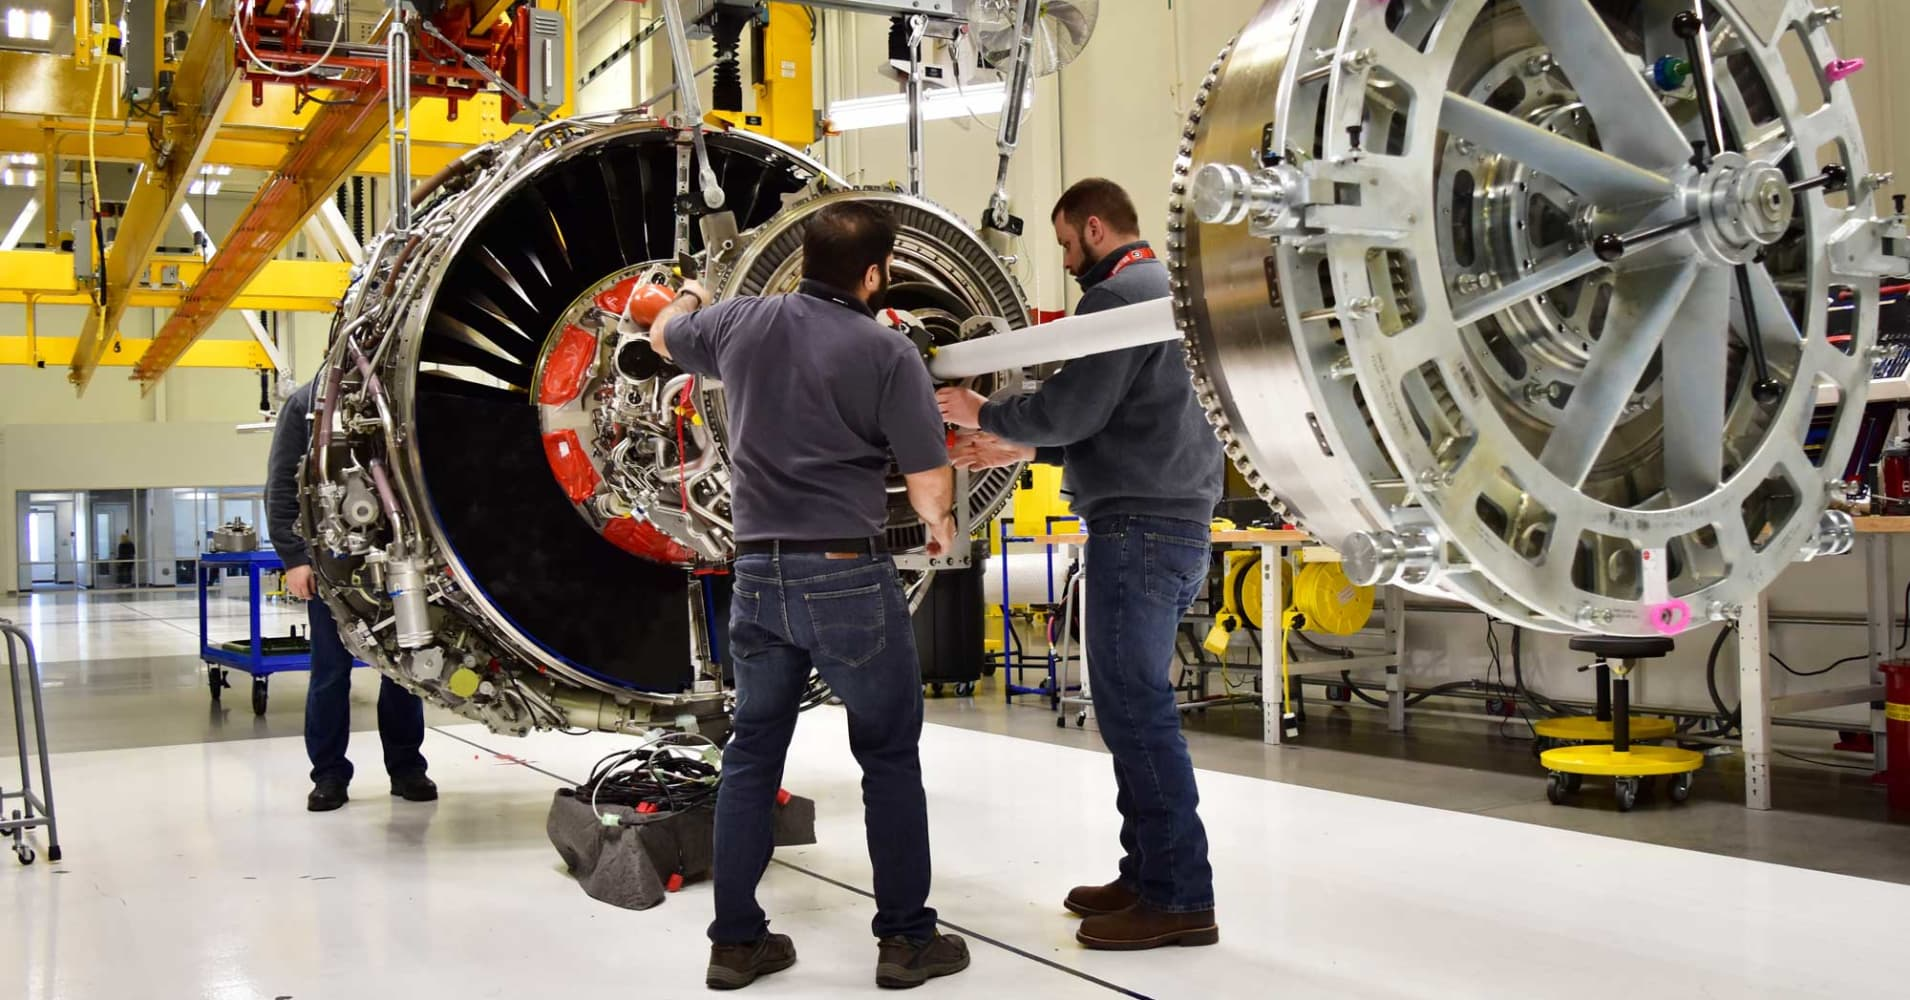 Technicians build LEAP engines for jetliners at a new, highly automated General Electric (GE) factory.